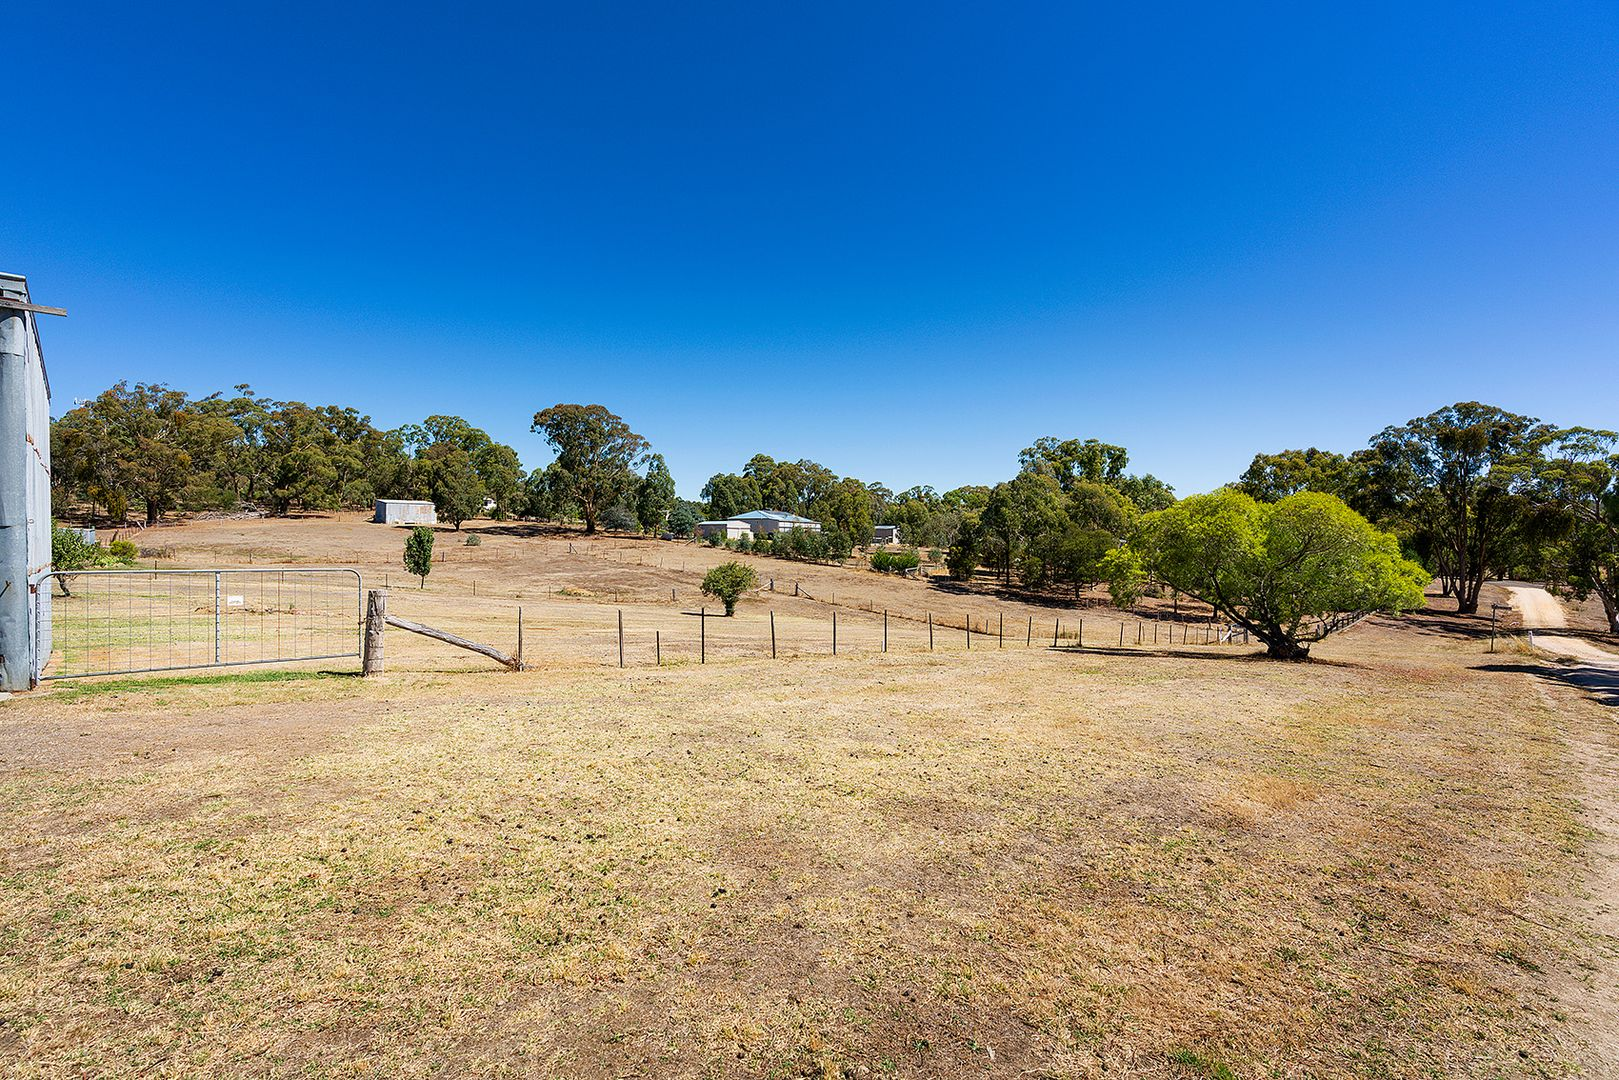 Lot 1 TP945333 and CA4 Section 19, McCrae Street, Elphinstone VIC 3448, Image 2